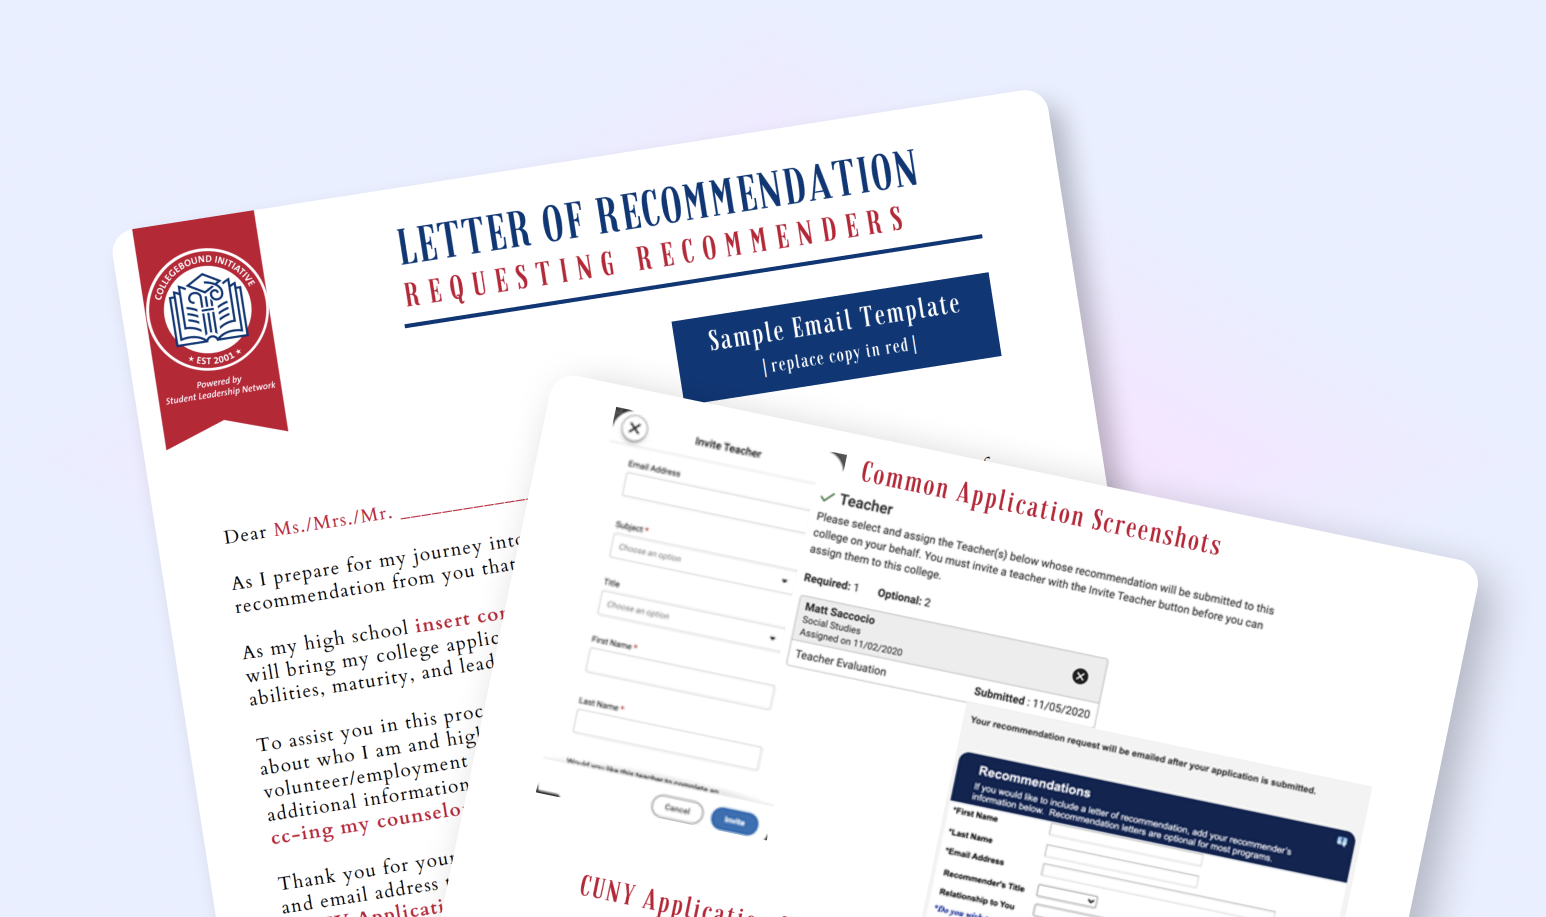 Colleges often ask applicants for letters of recommendation as part of the application; they provide admission staff with an outside perspective of your accomplishments and growth.